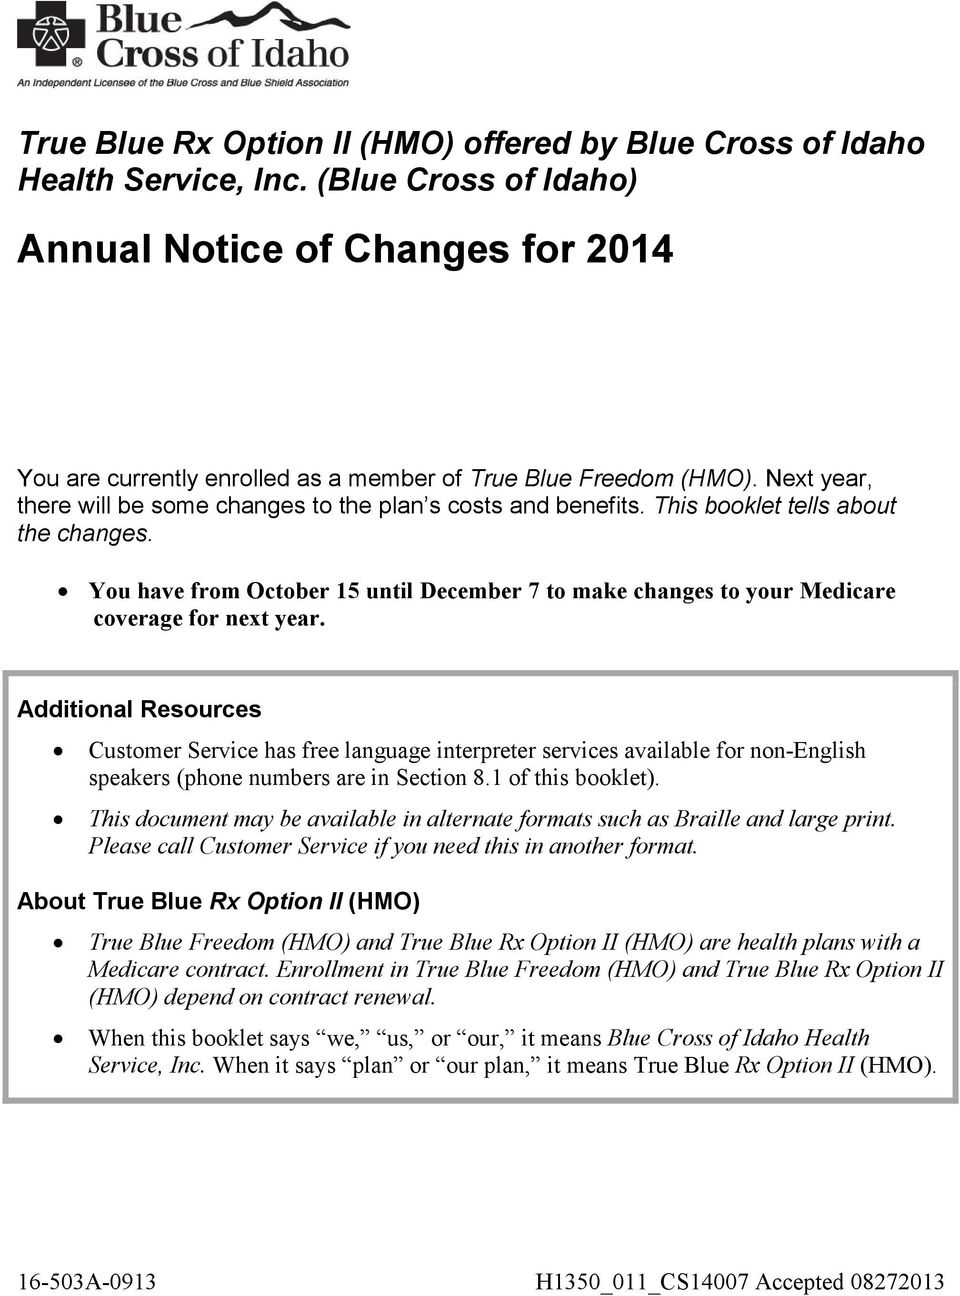 This booklet tells about the changes. You have from October 15 until December 7 to make changes to your Medicare coverage for next year.